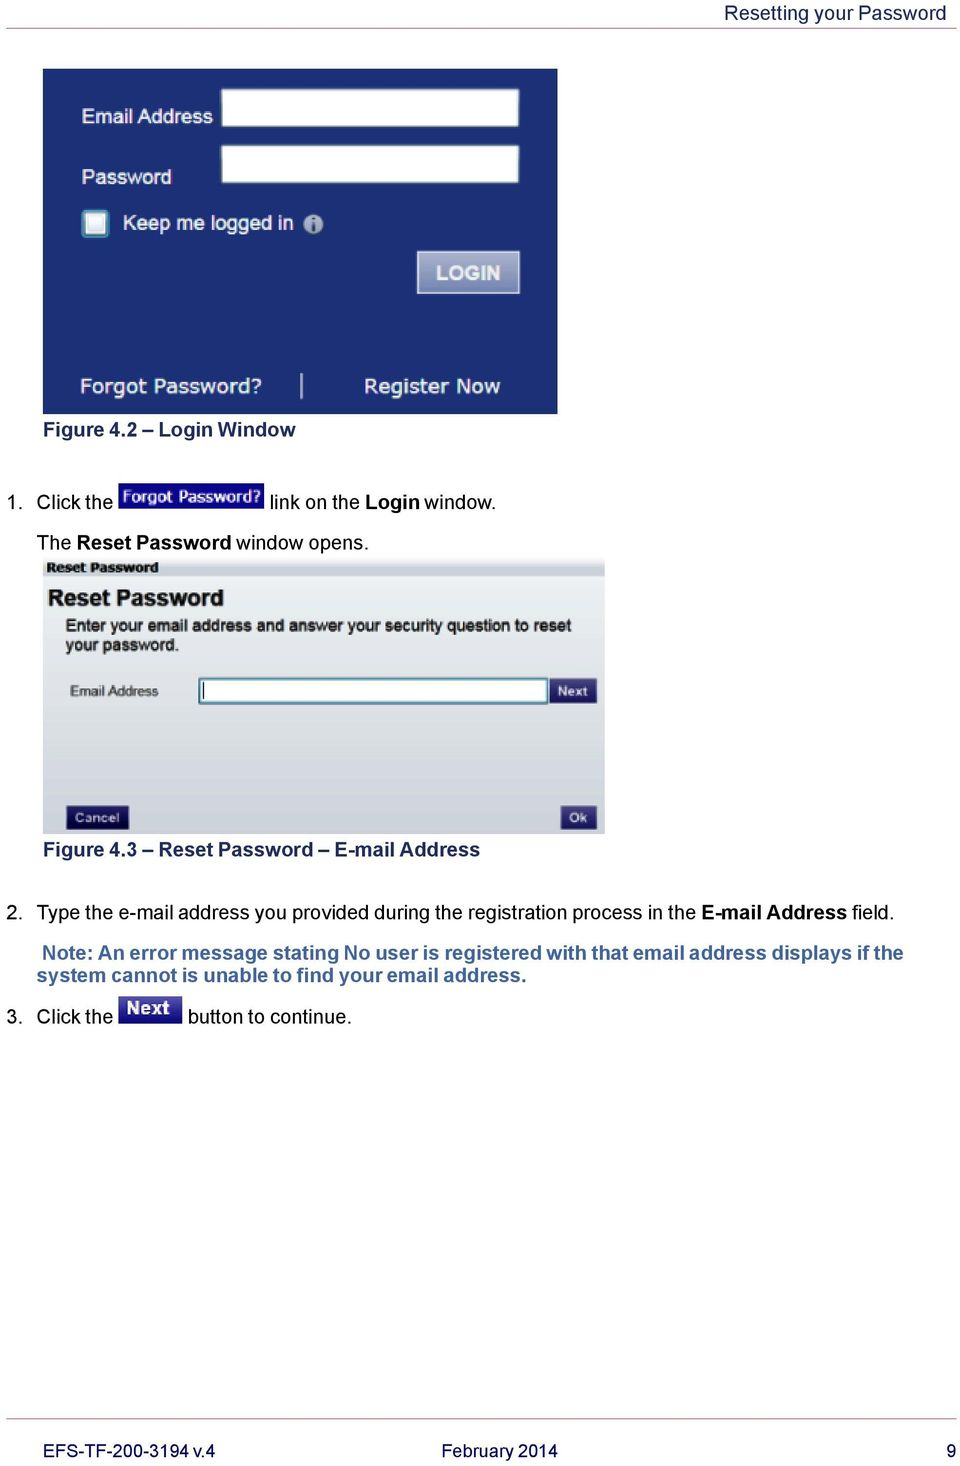 Type the e-mail address you provided during the registration process in the E-mail Address field.